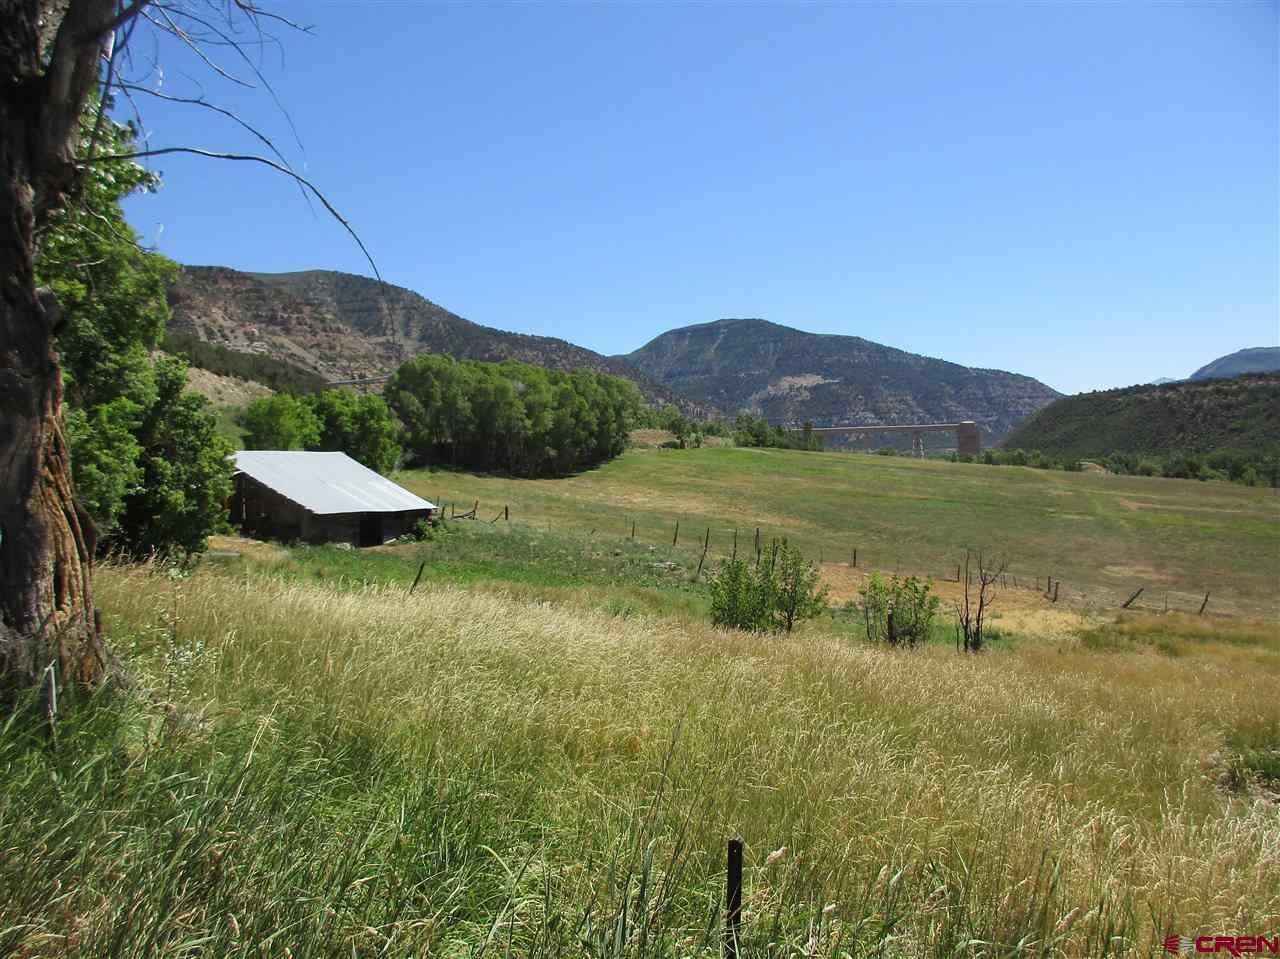 "51 acres with 300 shares of Fire Mountain irrigation water near Bowie Resources (coal mine).  Approximately 20 irrigated acres of farm ground. The Fire Mountain canal is a 34.7 mile canal with a portion of it running through this parcel of property with two head gates.  One is by the house, the other is by the road. This parcel is located on both sides of the road--farm ground on one side and the other side, approximately  26 acres (MOL) is primarily cedar trees.   Excellent opportunity to harvest 8"" and 10""  cedar poles for fencing.  The elk have used this as one of their migration routes for many years.  Includes an 892 s/f home built in 1917 that is currently uninhabitable and is being sold in 'as is, where is condition with no warranties expressed or implied'.Property also includes outbuildings.  Are you interested in preserving our land?  This parcel may be your perfect candidate for a conservation easement."